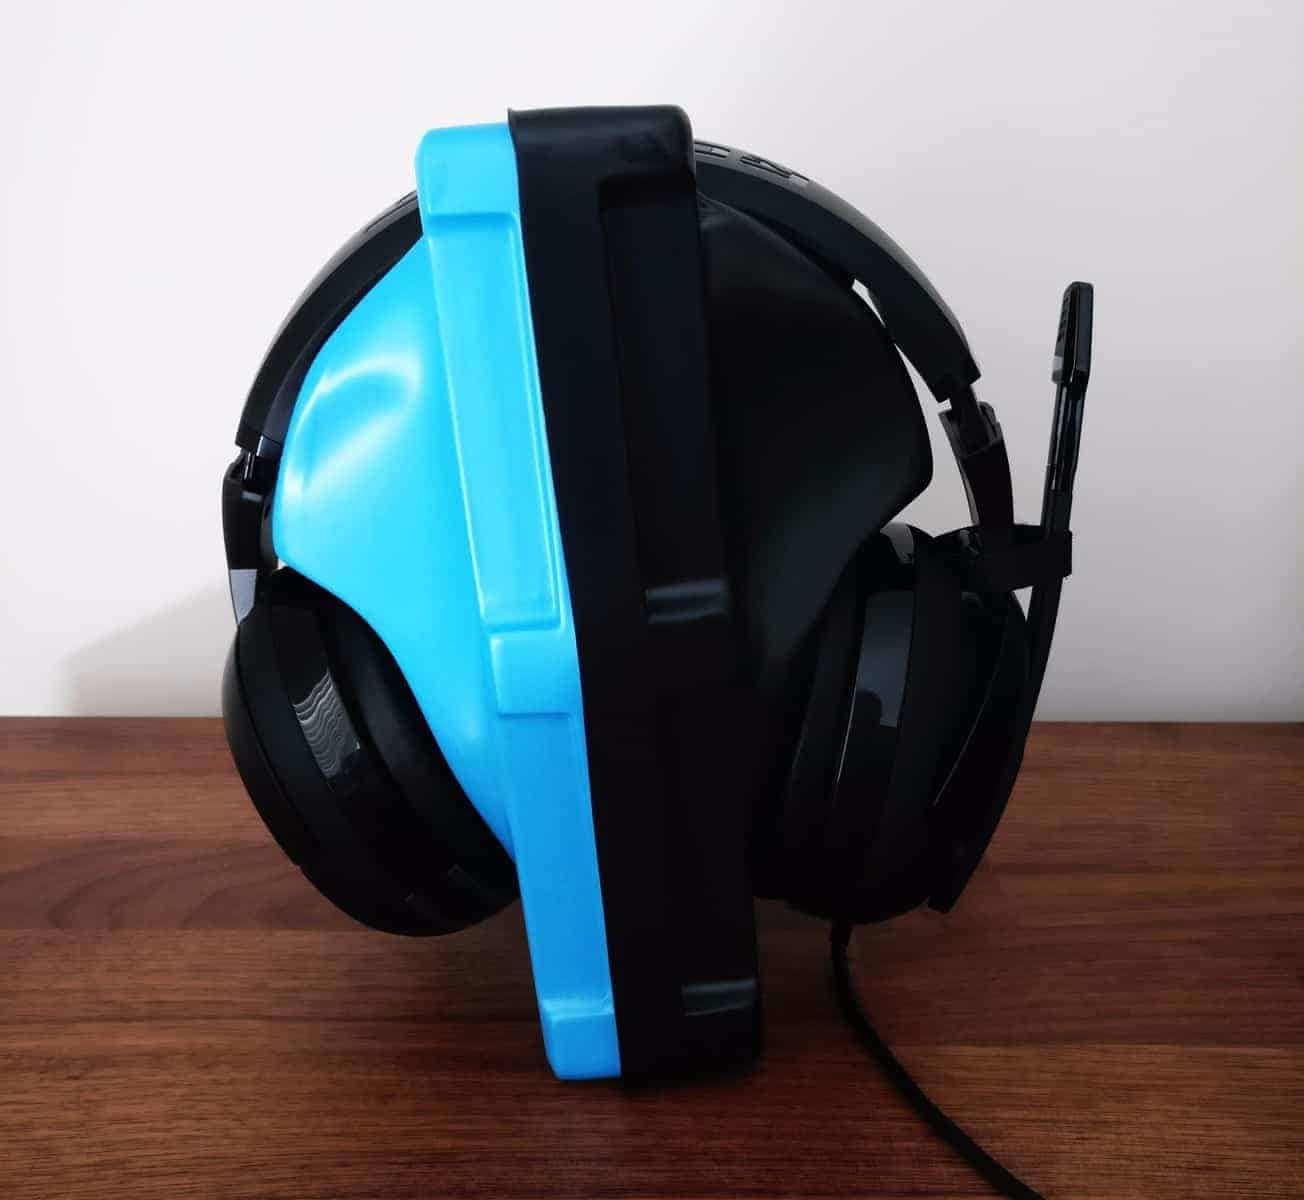 roccat-kave-photos07 Roccat Kave XTD 5.1 Digital Gaming Headset Review